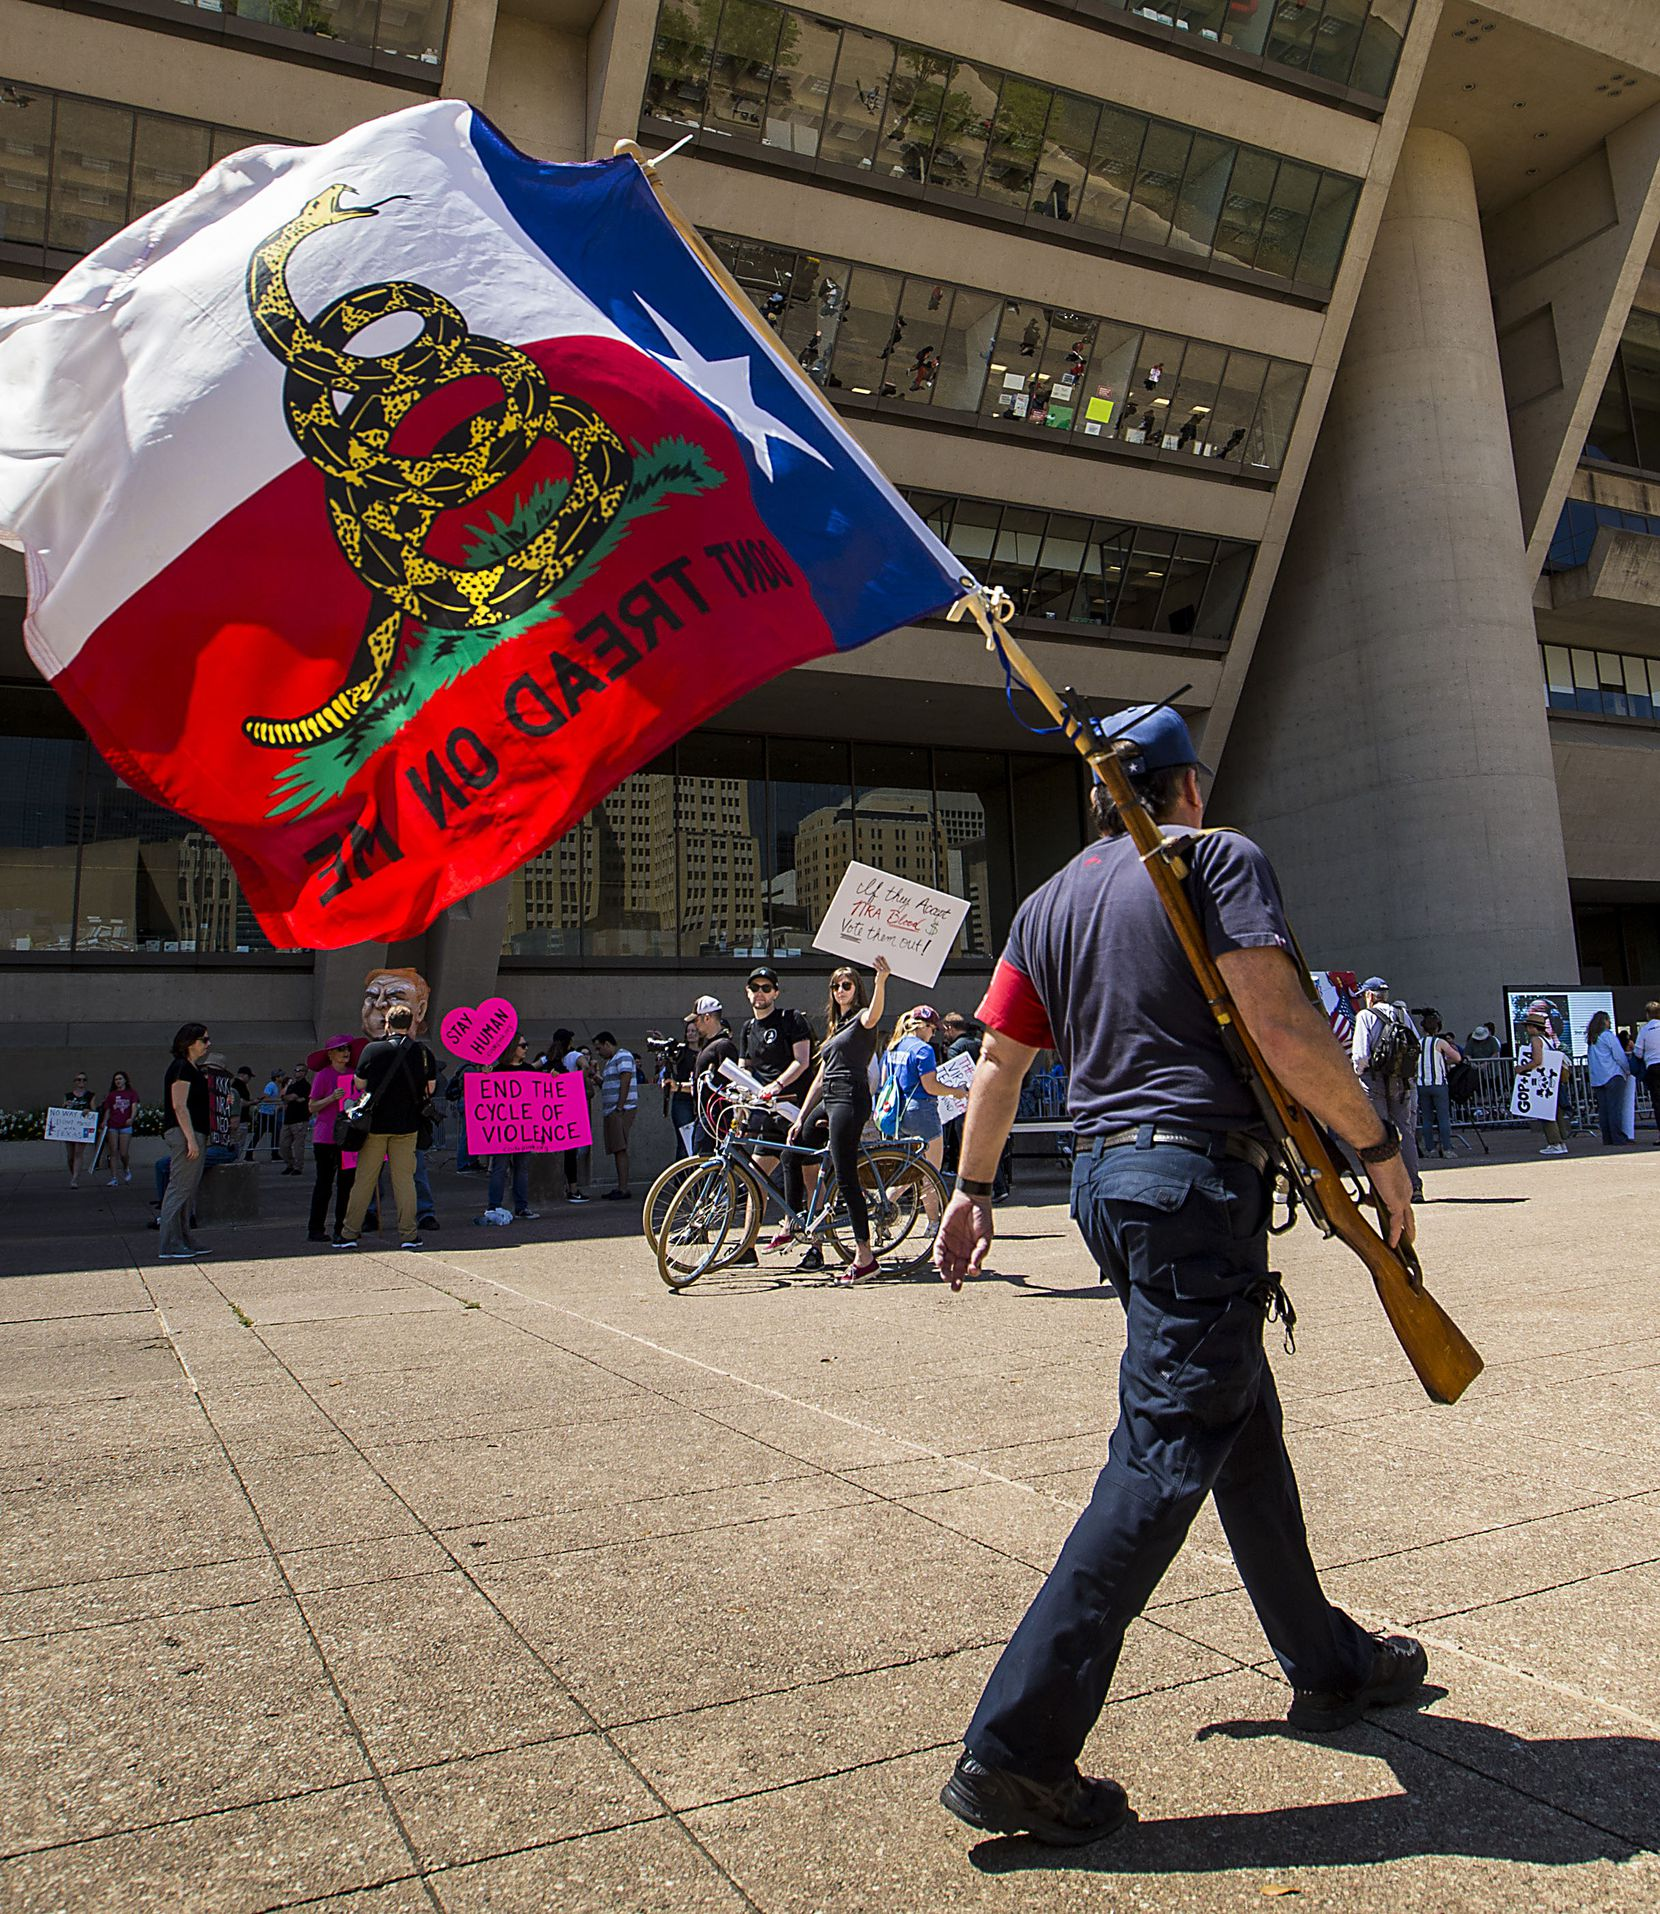 Gun rights advocate Brad McClain carries a rifle and flag as he walks past a rally of gun control advocates outside Dallas City Hall during the NRA Annual Meeting & Exhibits at the Kay Bailey Hutchison Convention Center on Saturday, May 5, 2018, in Dallas.